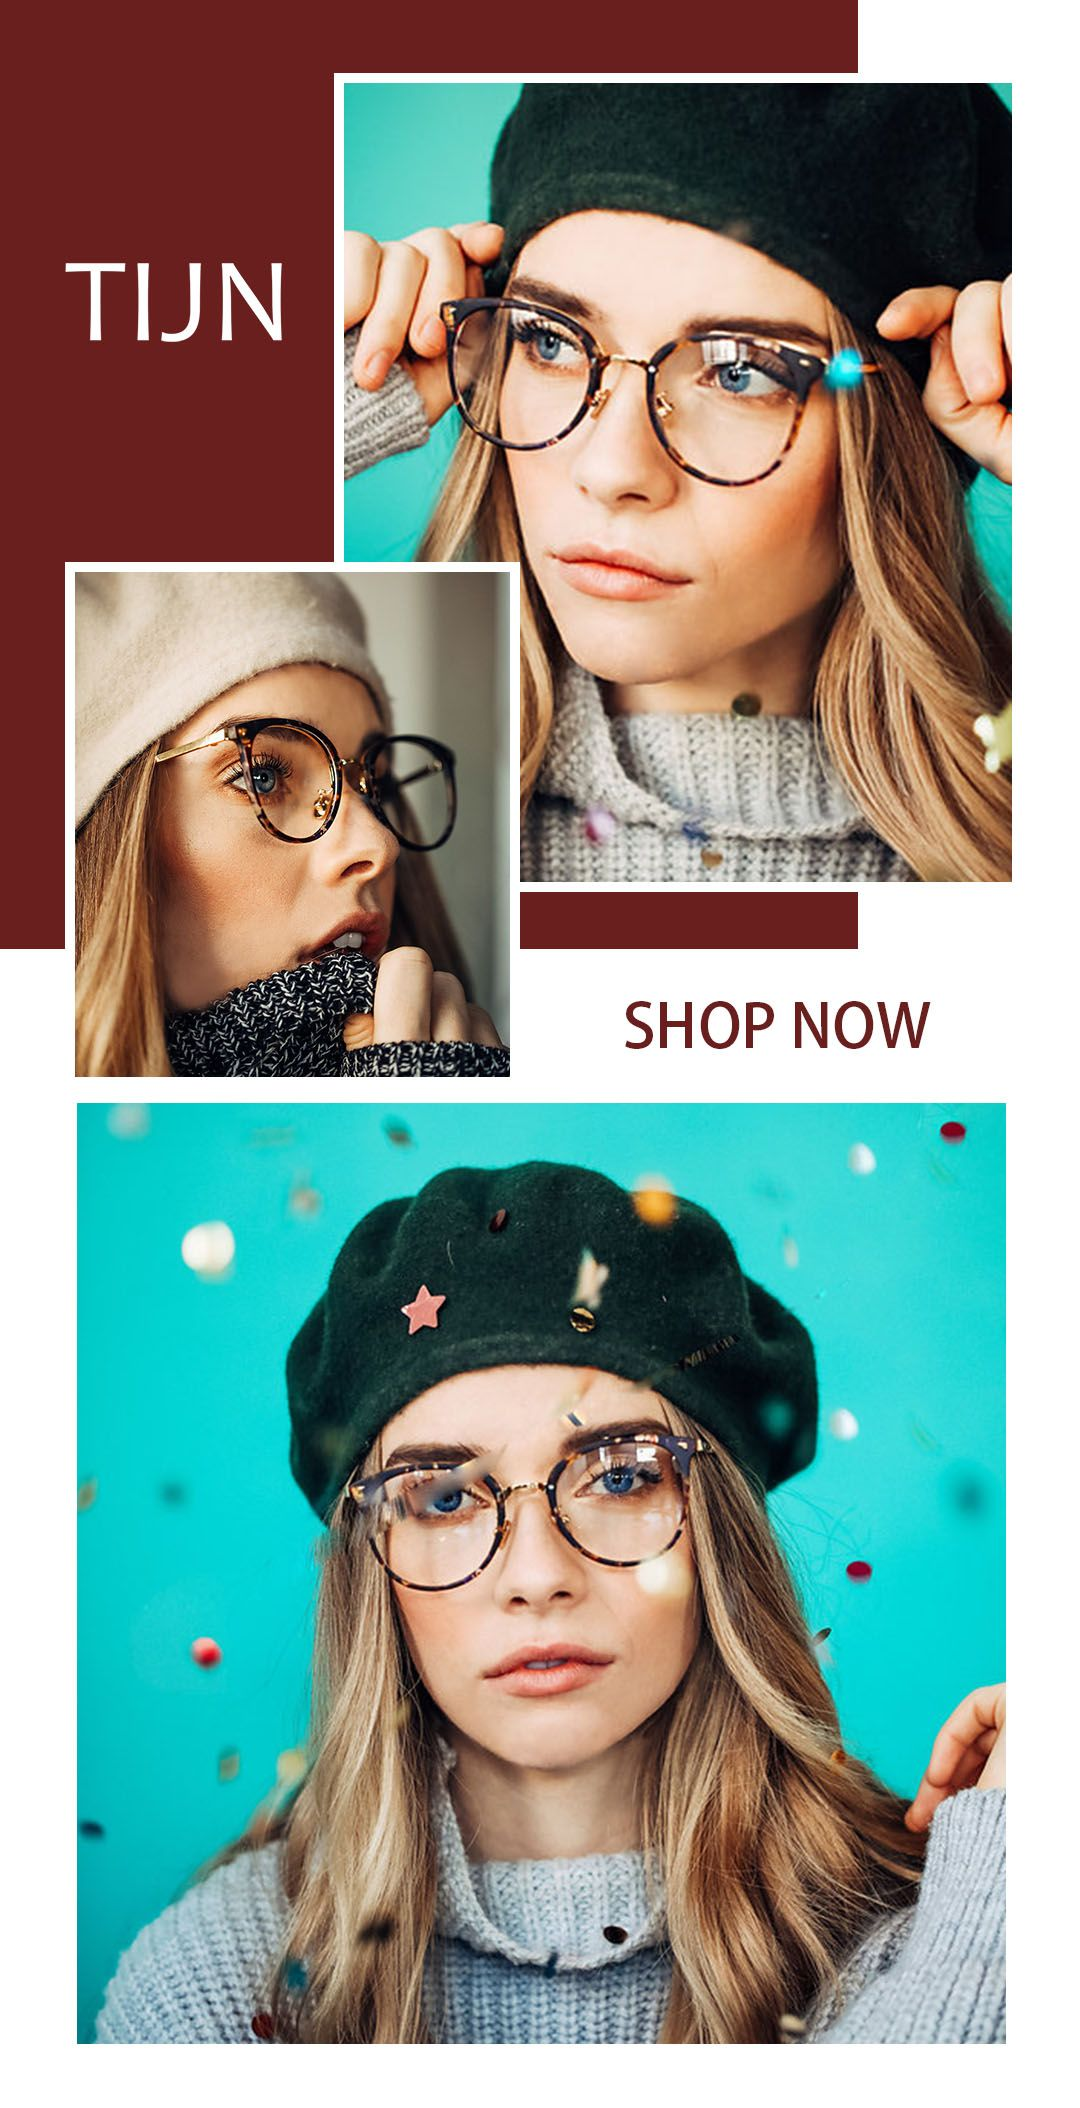 10fea13f88 How to be fashion with an eye-wear  You may get a new look.Top sale glasses.   eye-wear  fashion eye-wear  sunglasses eye  fashion accessories  fashion  ...